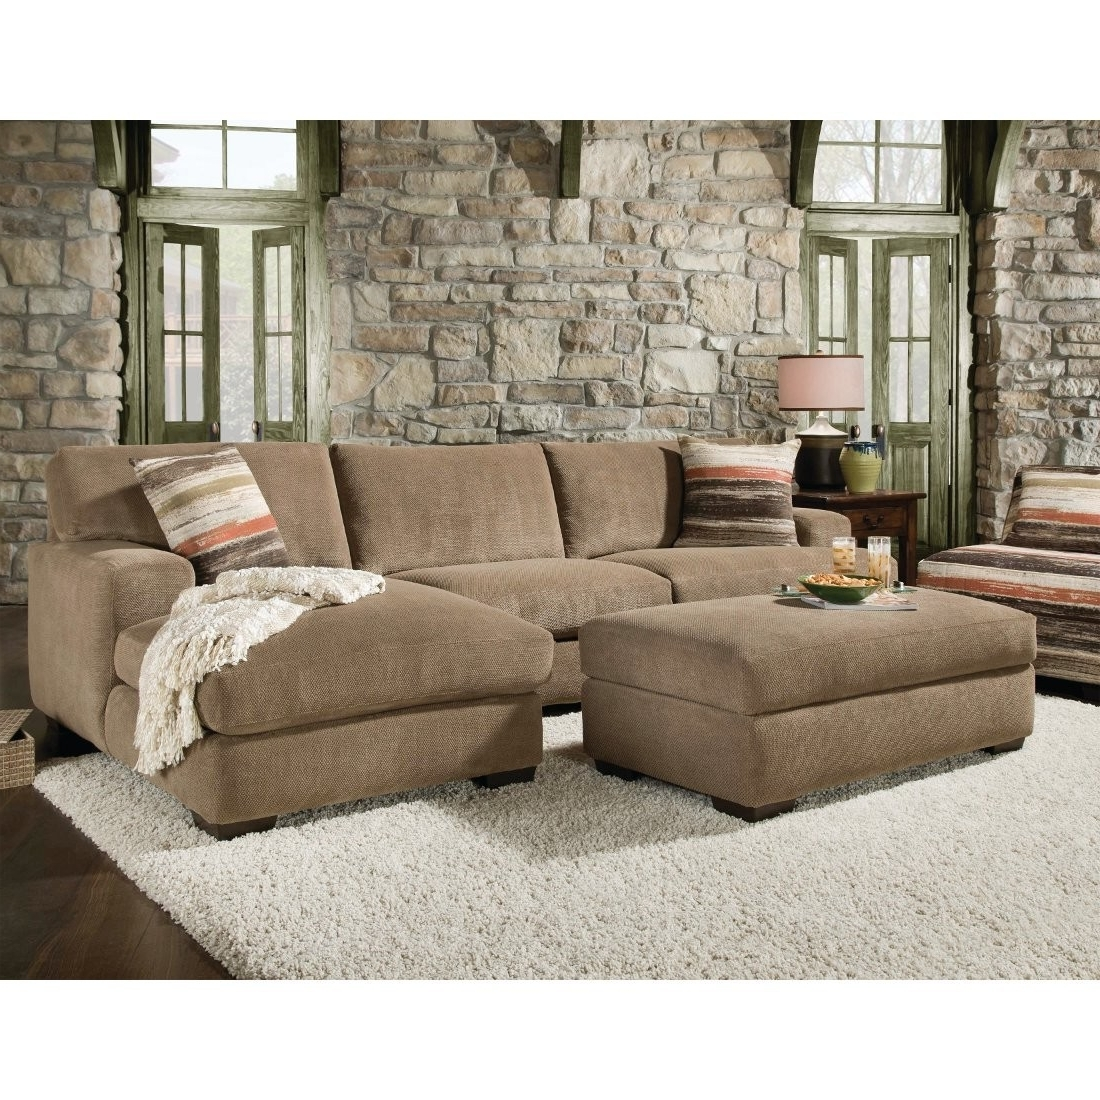 Trendy 2 Piece Sectional Sofas With Chaise With 2 Piece Sectional Sofa With Chaise Design (View 14 of 15)